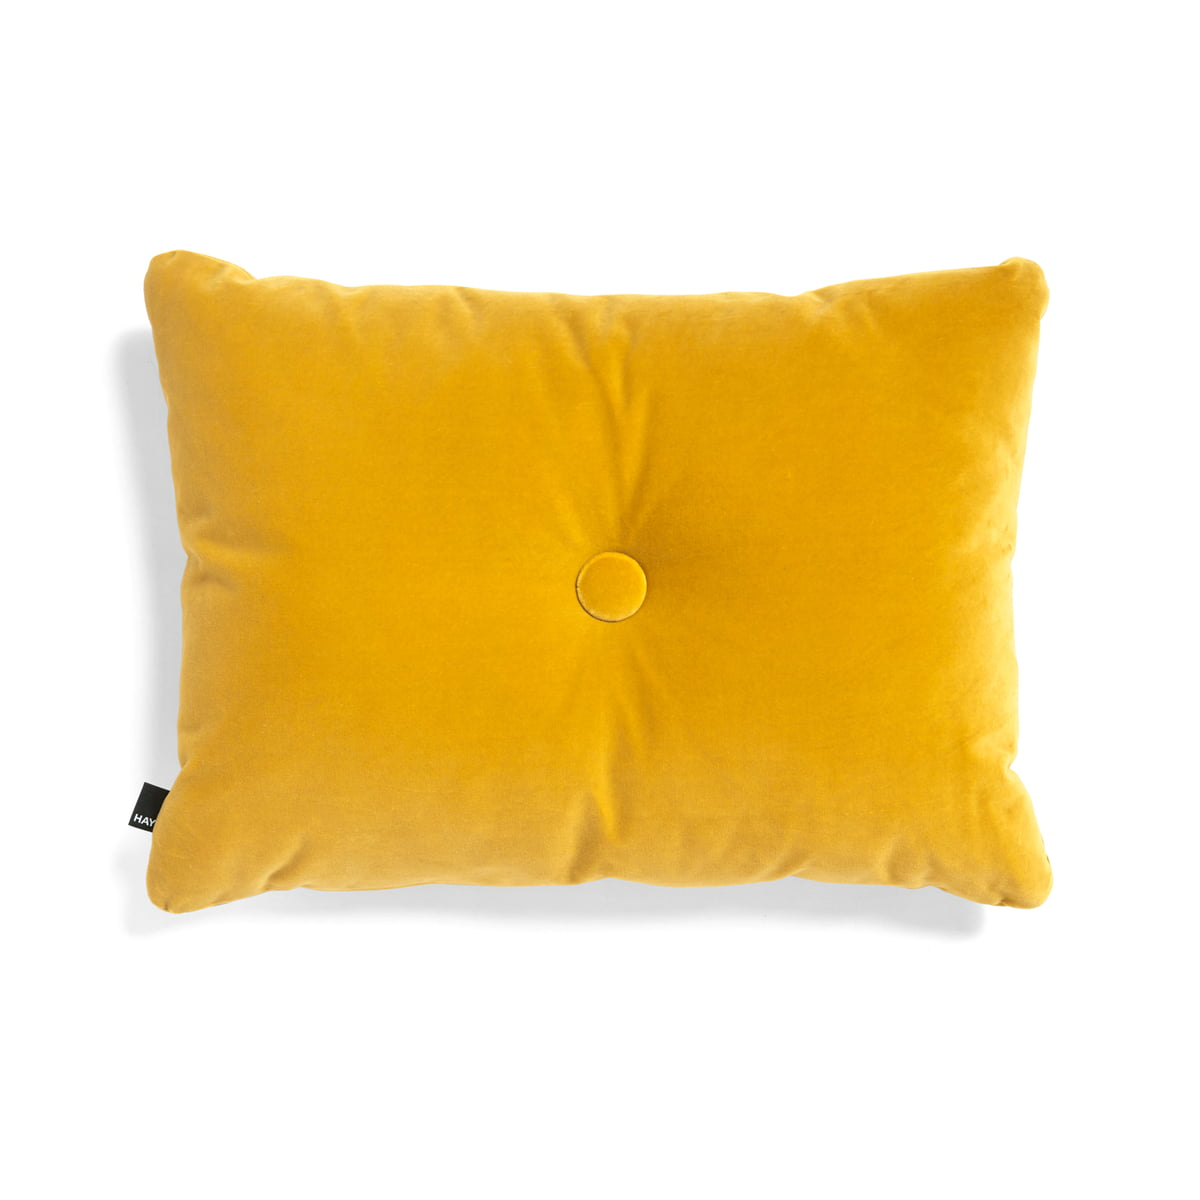 Hay Kissen Dot dot cushion by hay connox